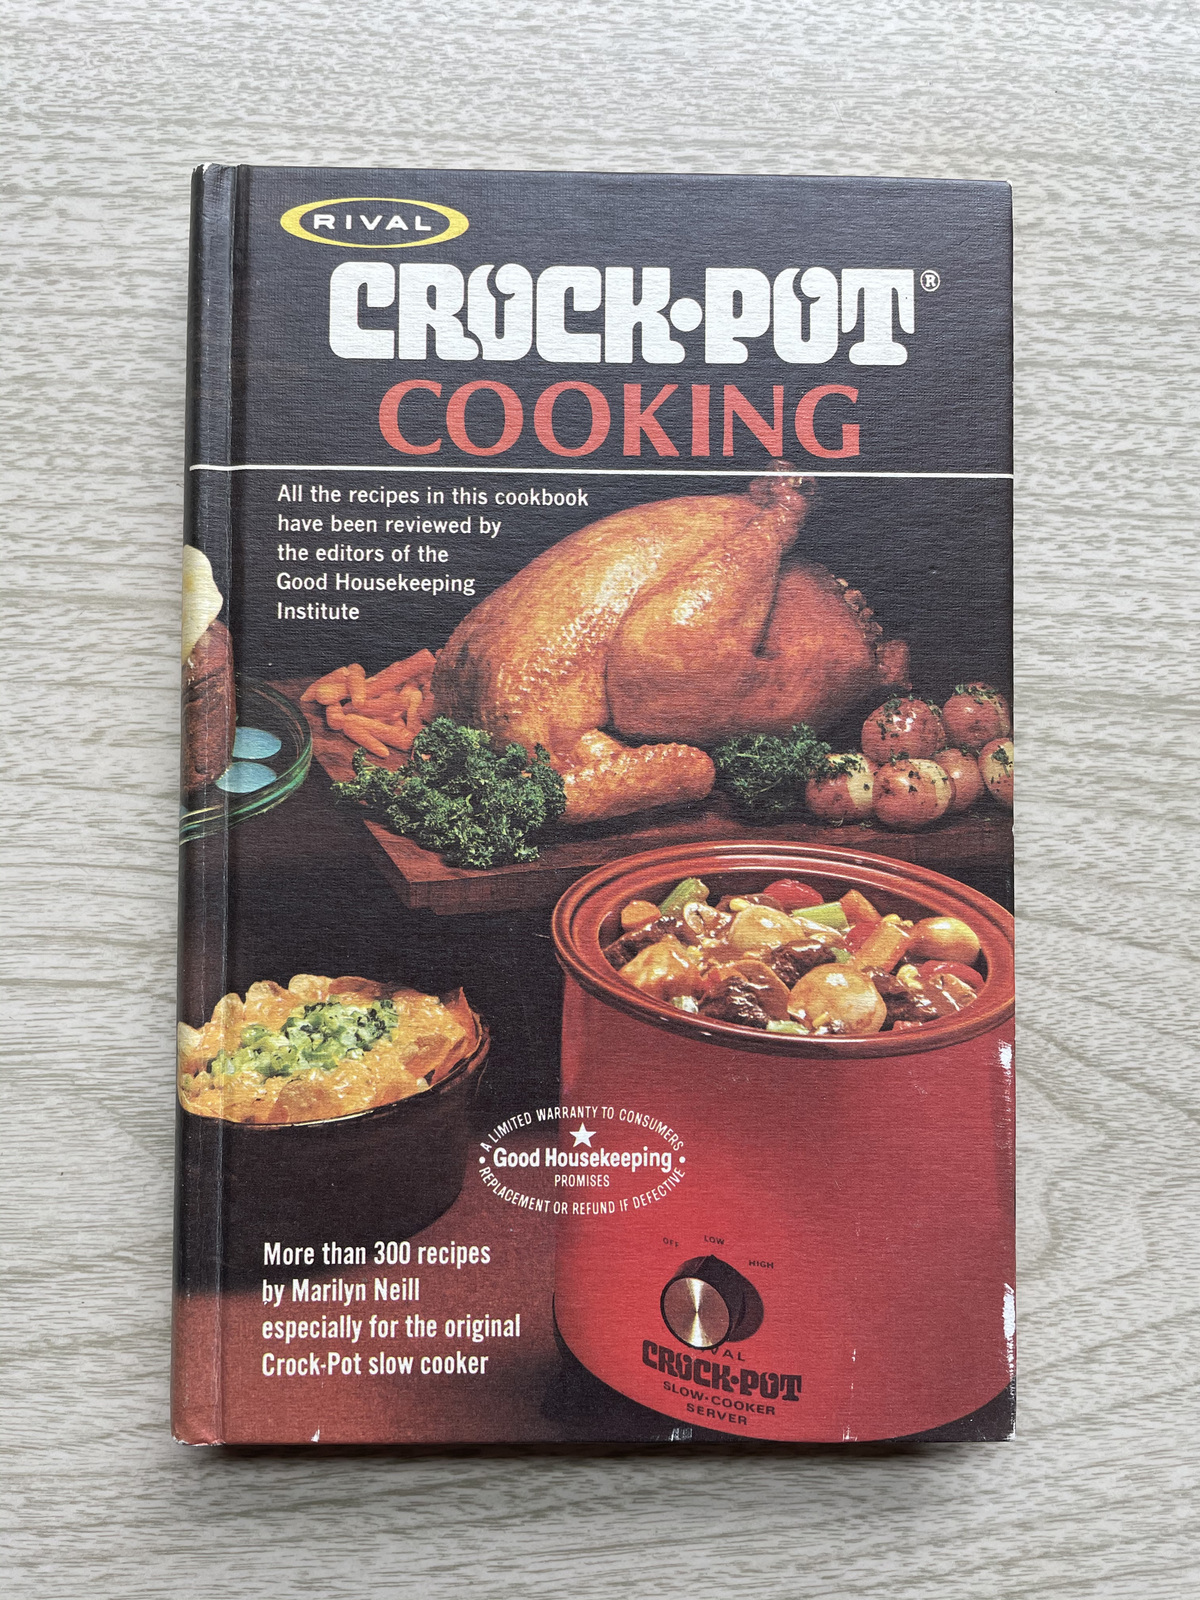 Vintage 1975 Rival Crock-Pot Cooking Cook Book - hardcover